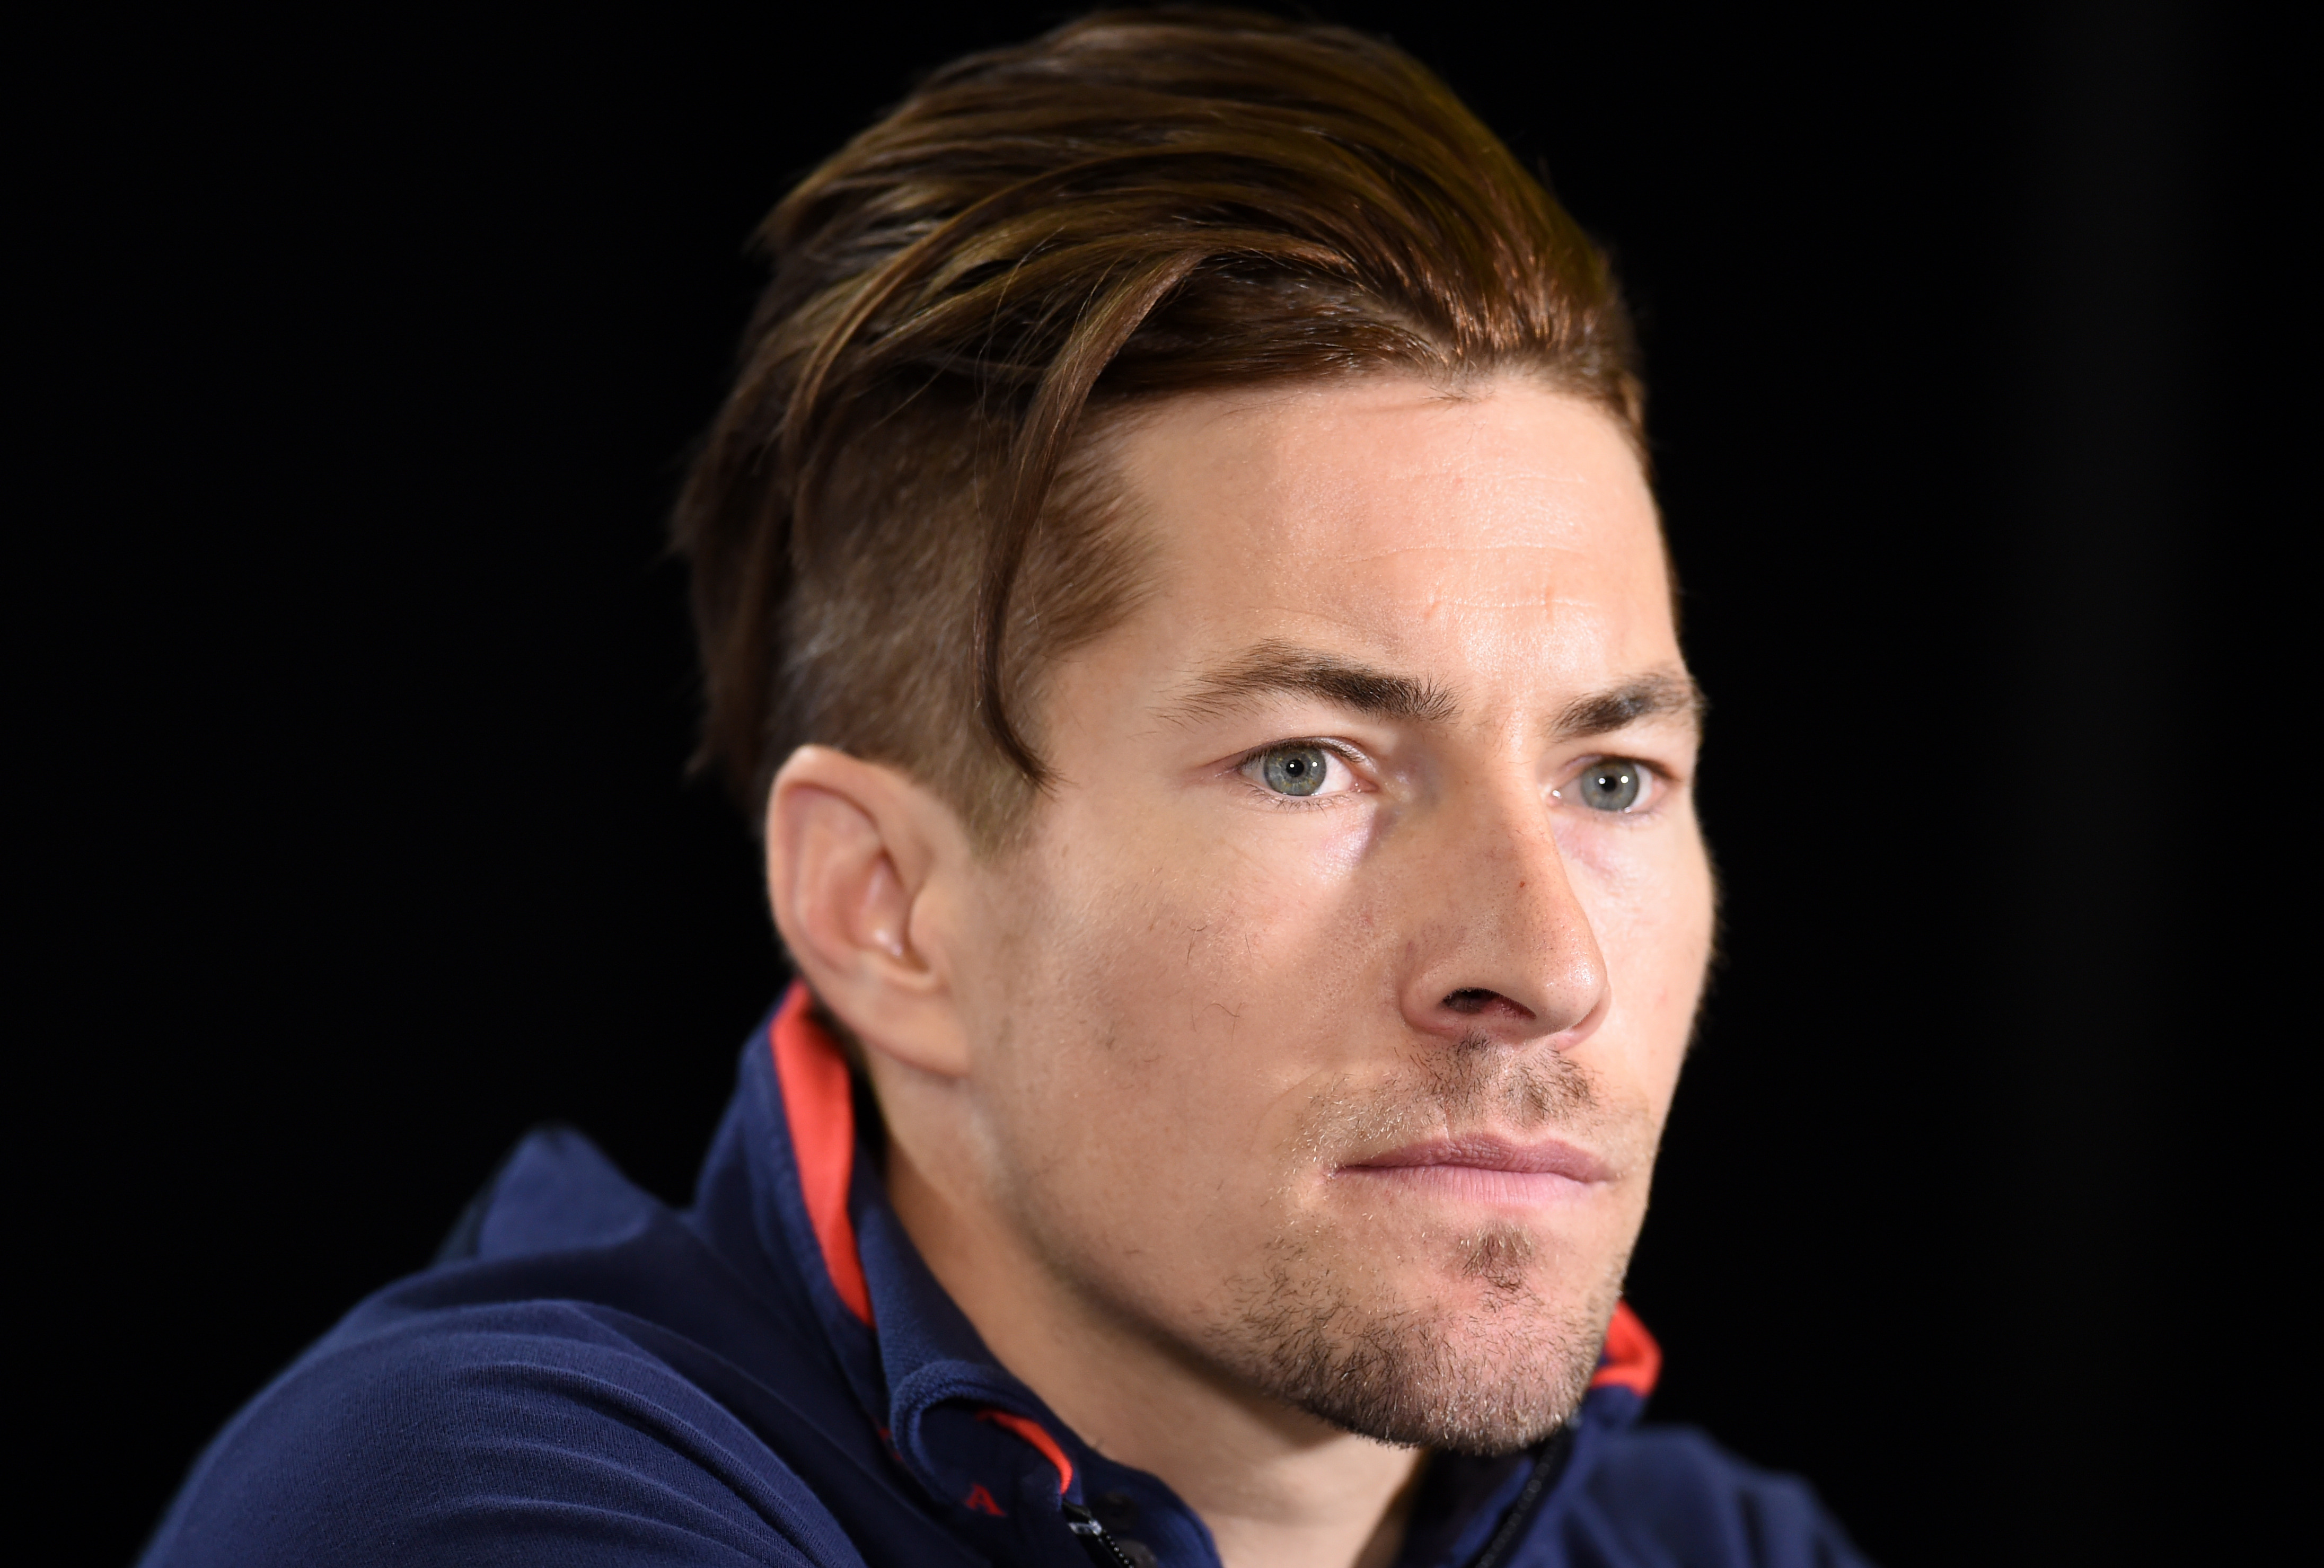 MotoGP champion Nicky Hayden dies after accident - InDaily